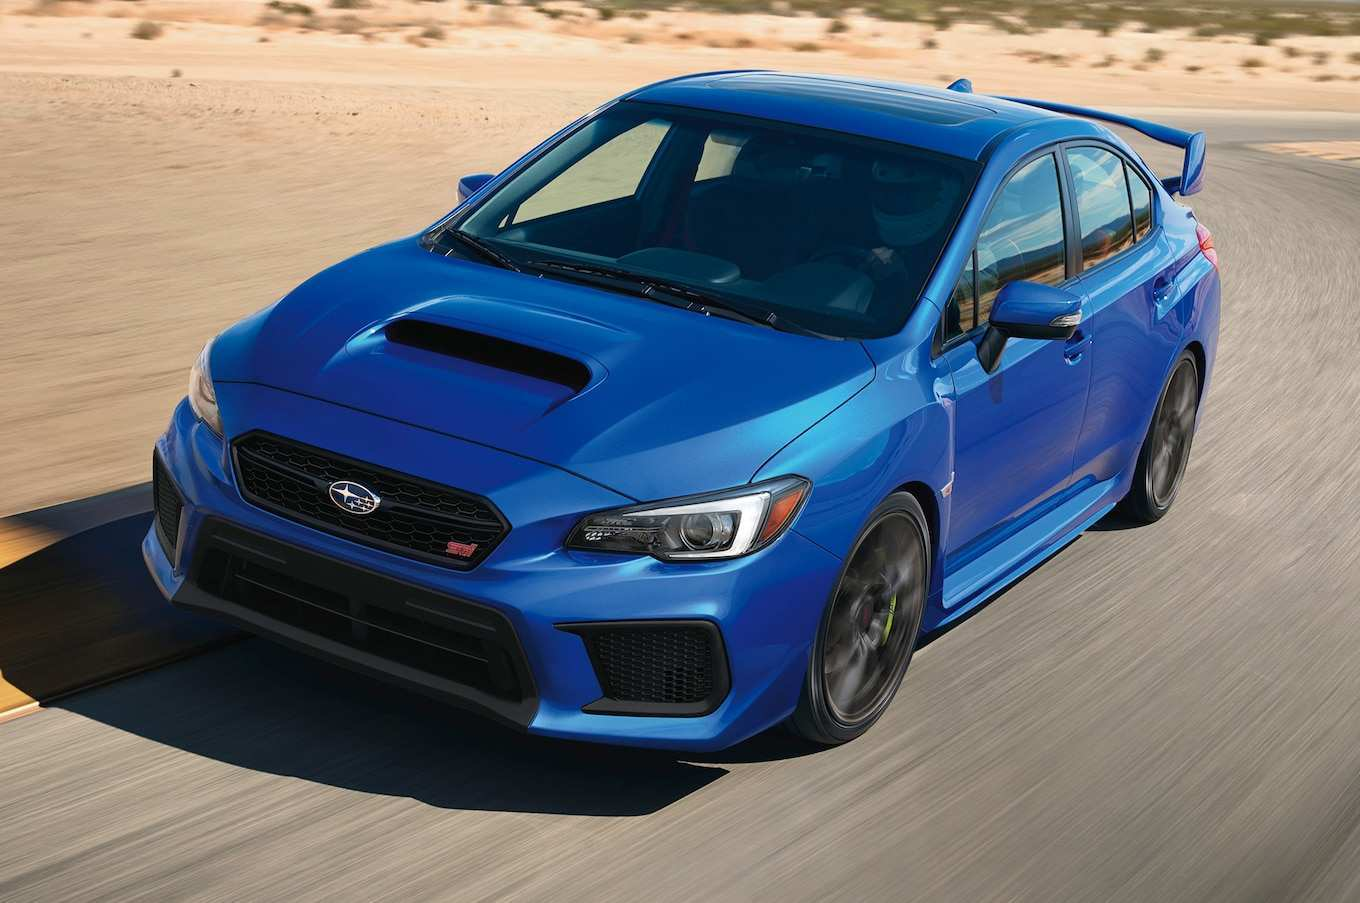 25 New The 2019 Subaru Wrx Quarter Mile Price And Review Release Date for The 2019 Subaru Wrx Quarter Mile Price And Review